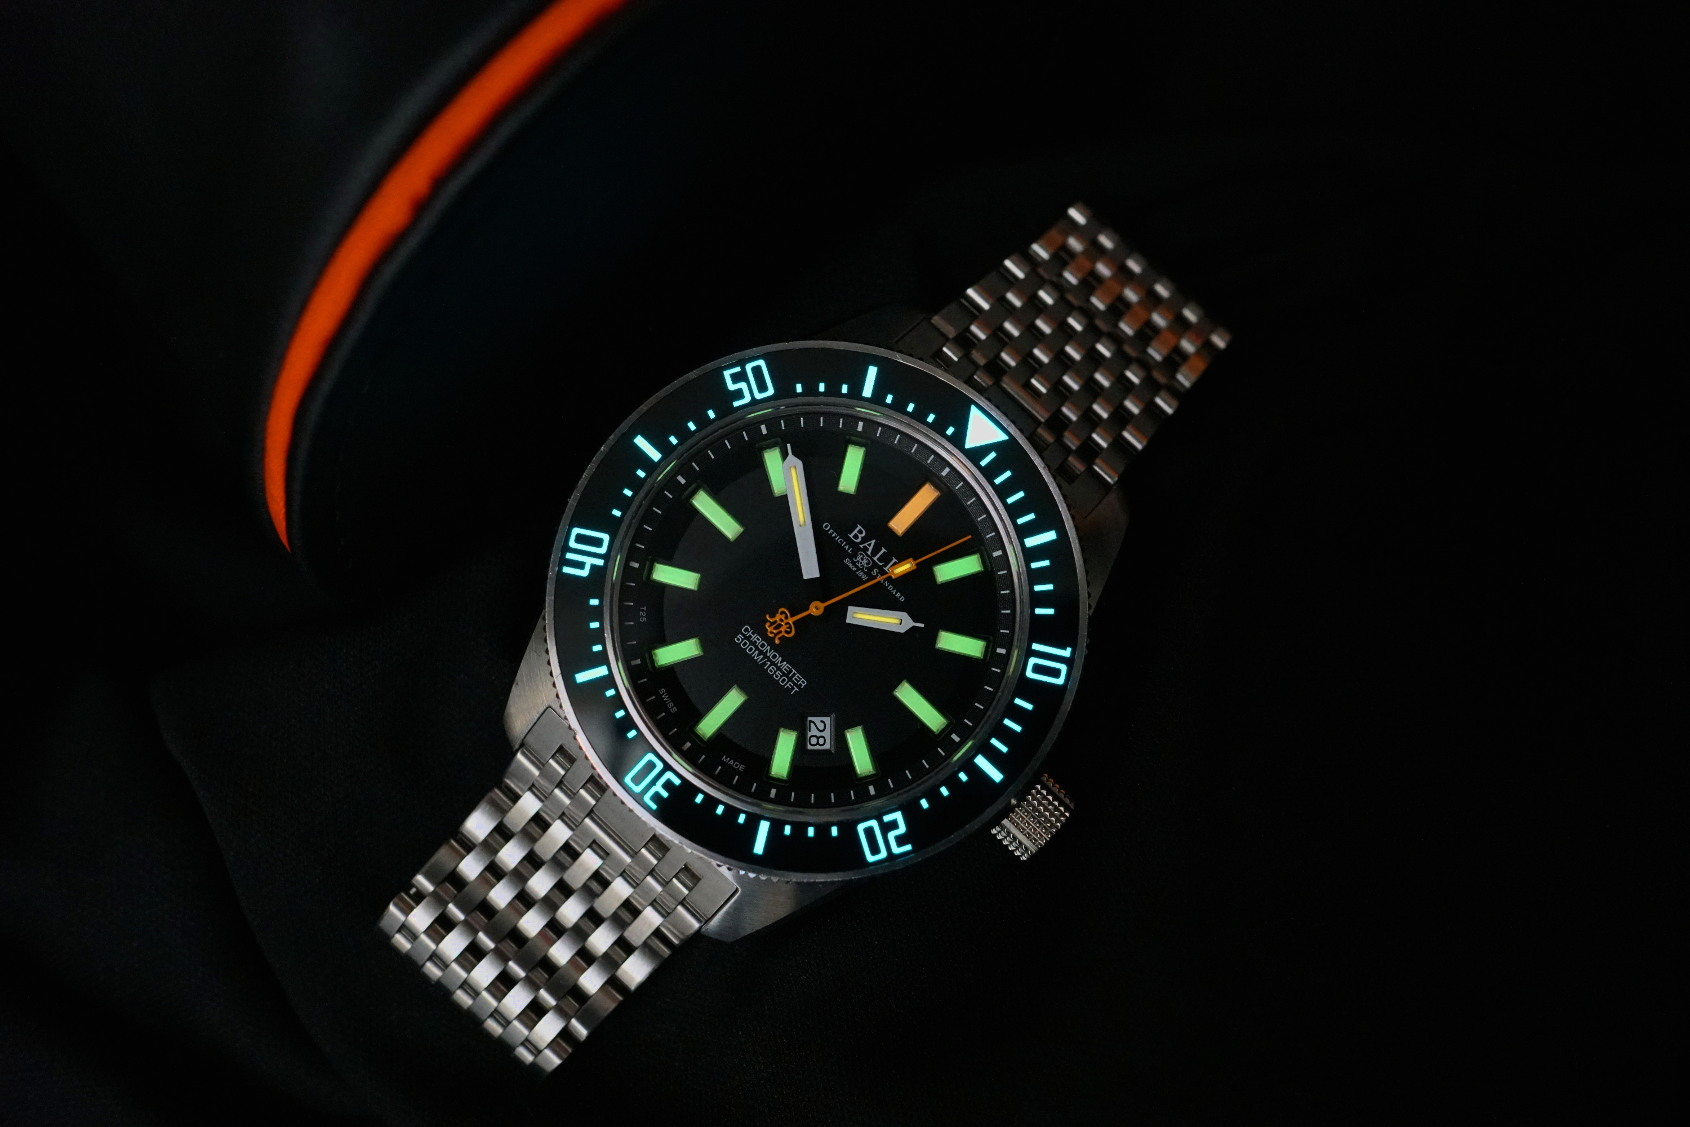 Solid value, awesome lume –the Ball Engineer Master II Skindiver II